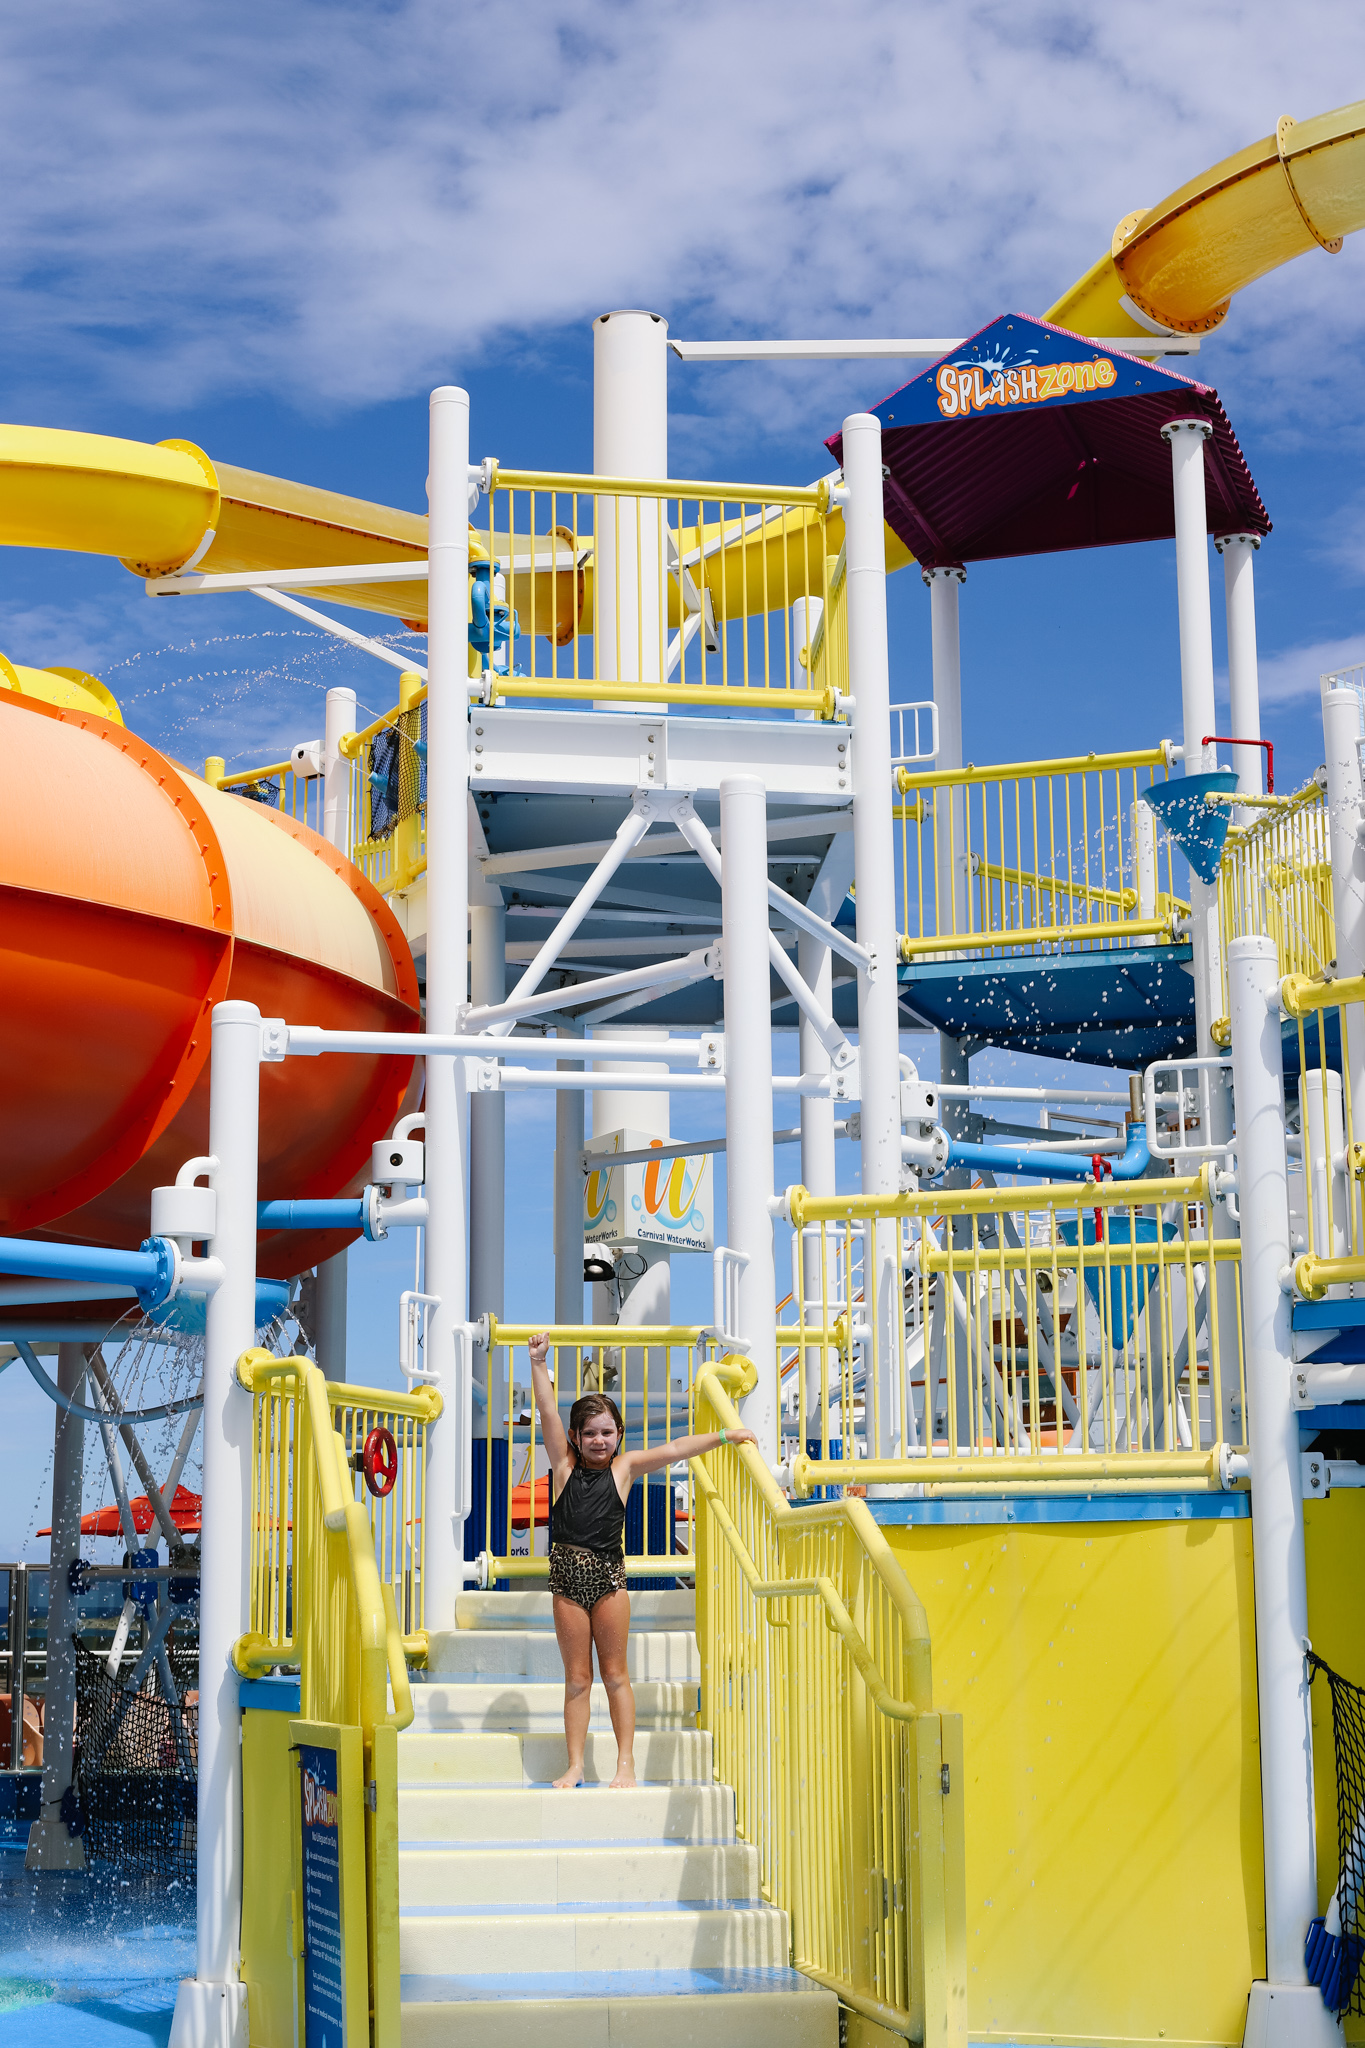 Carnival Breeze Waterworks splash park for kids